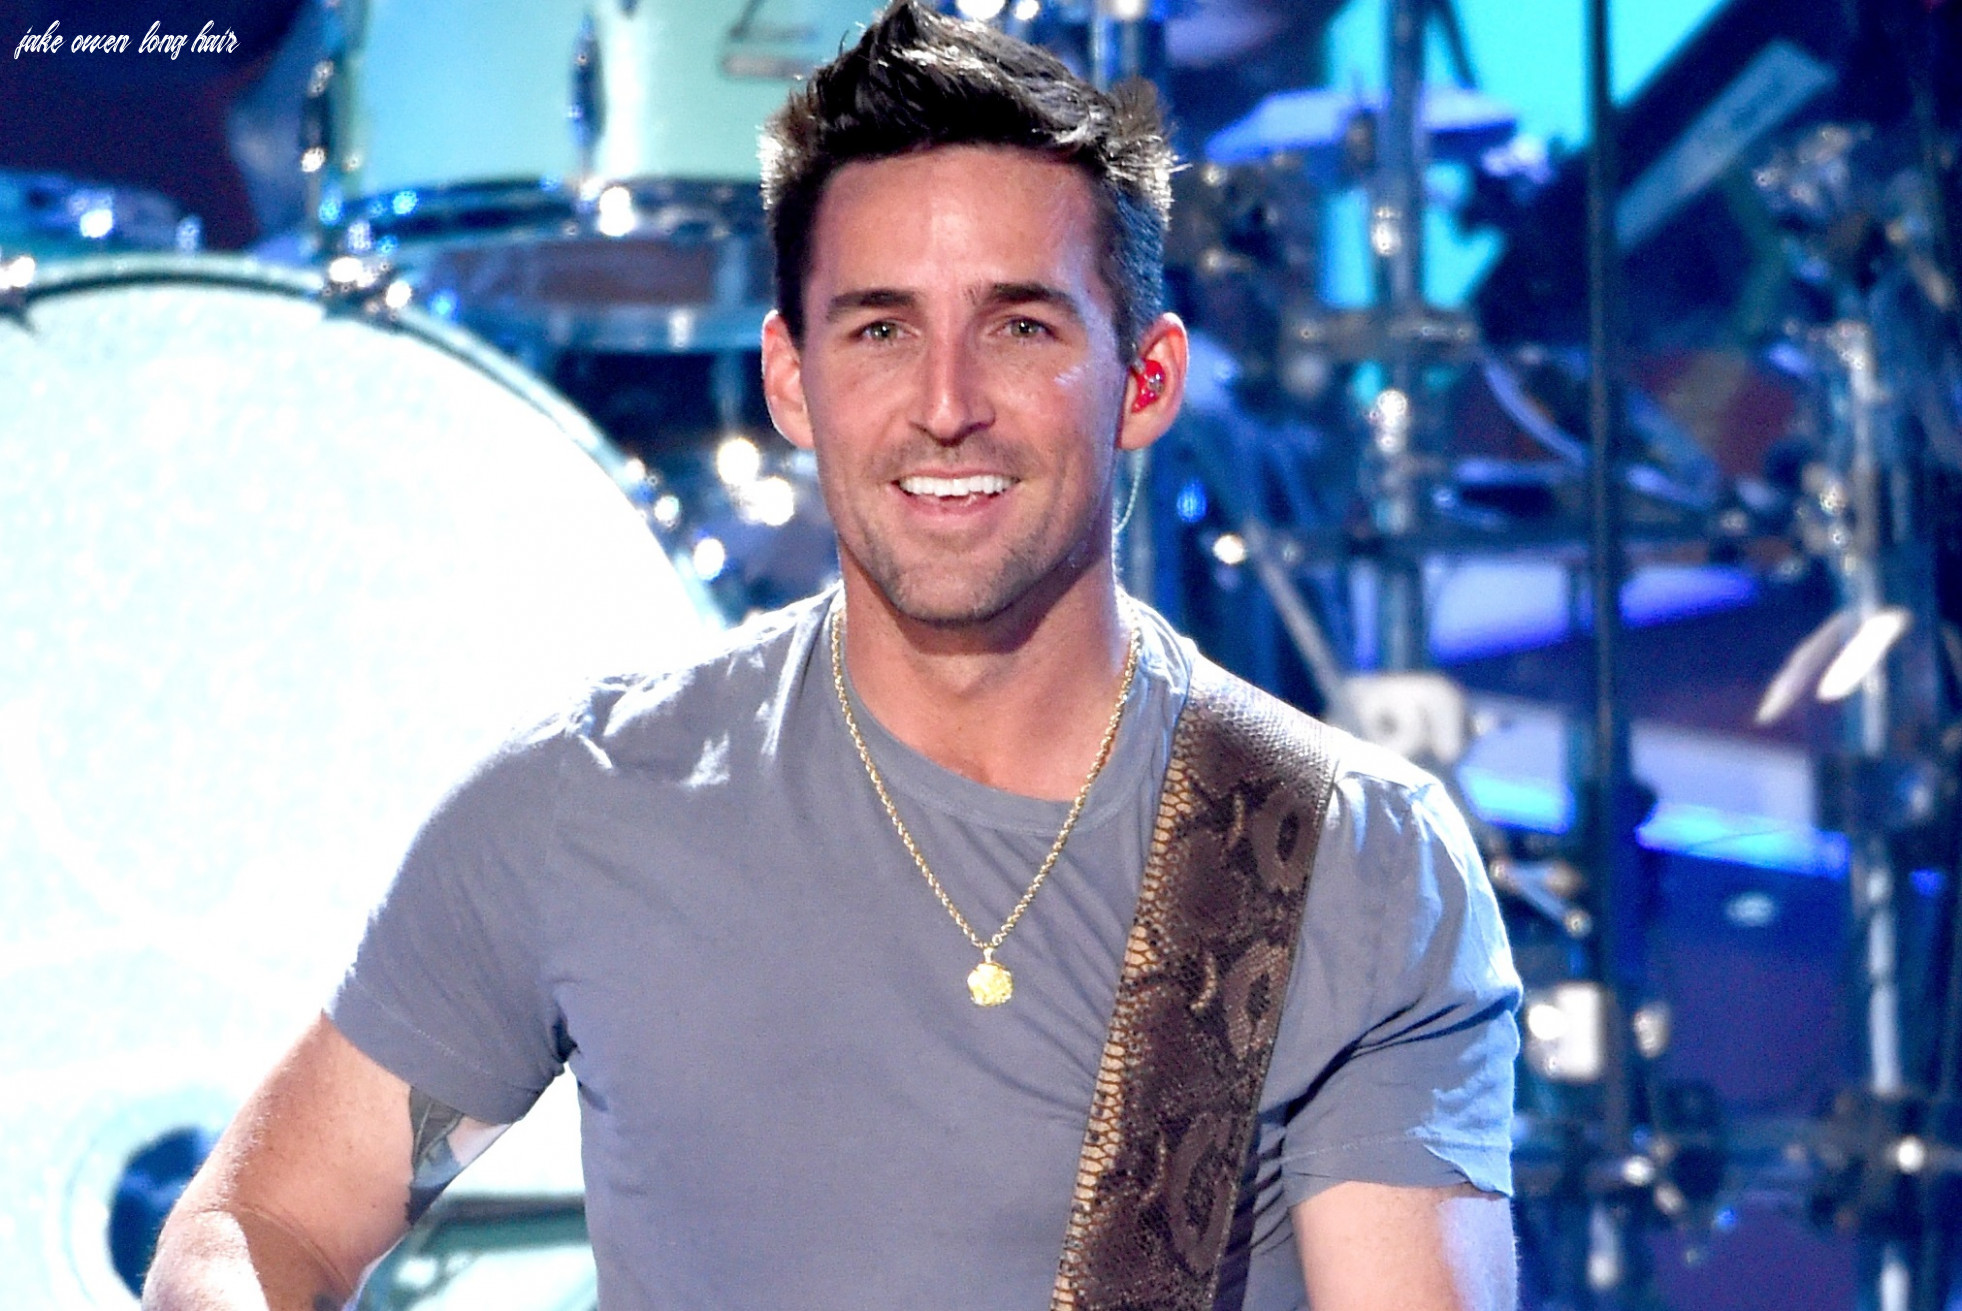 Jake Owen Divides Twitter After Announcing Plans To Grow His Hair ...